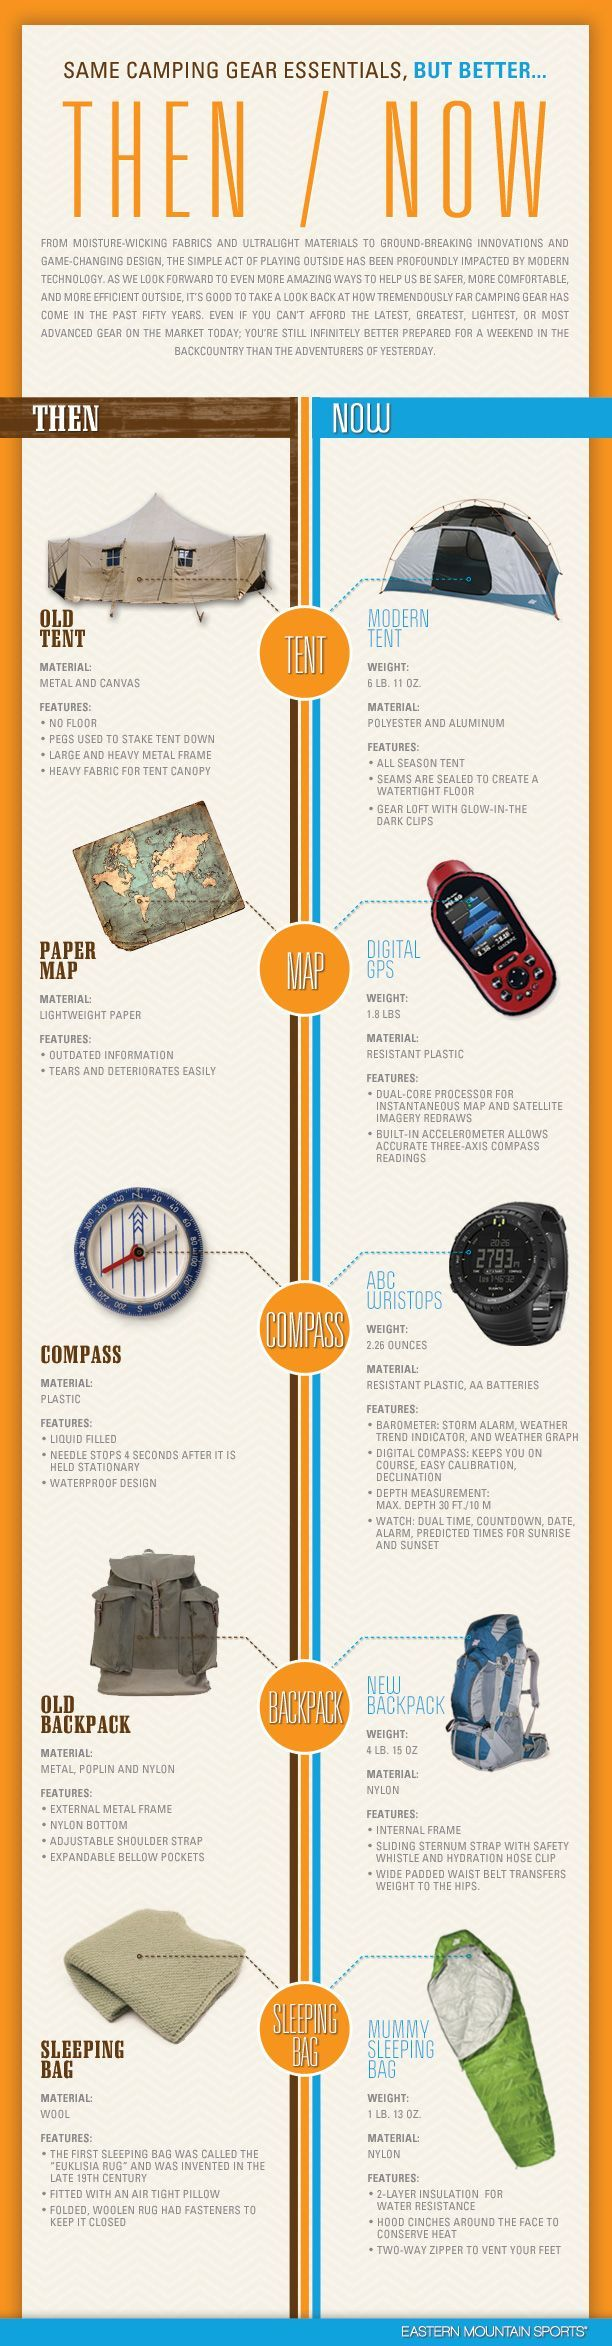 Evolution of #Hiking and #Camping #Gear